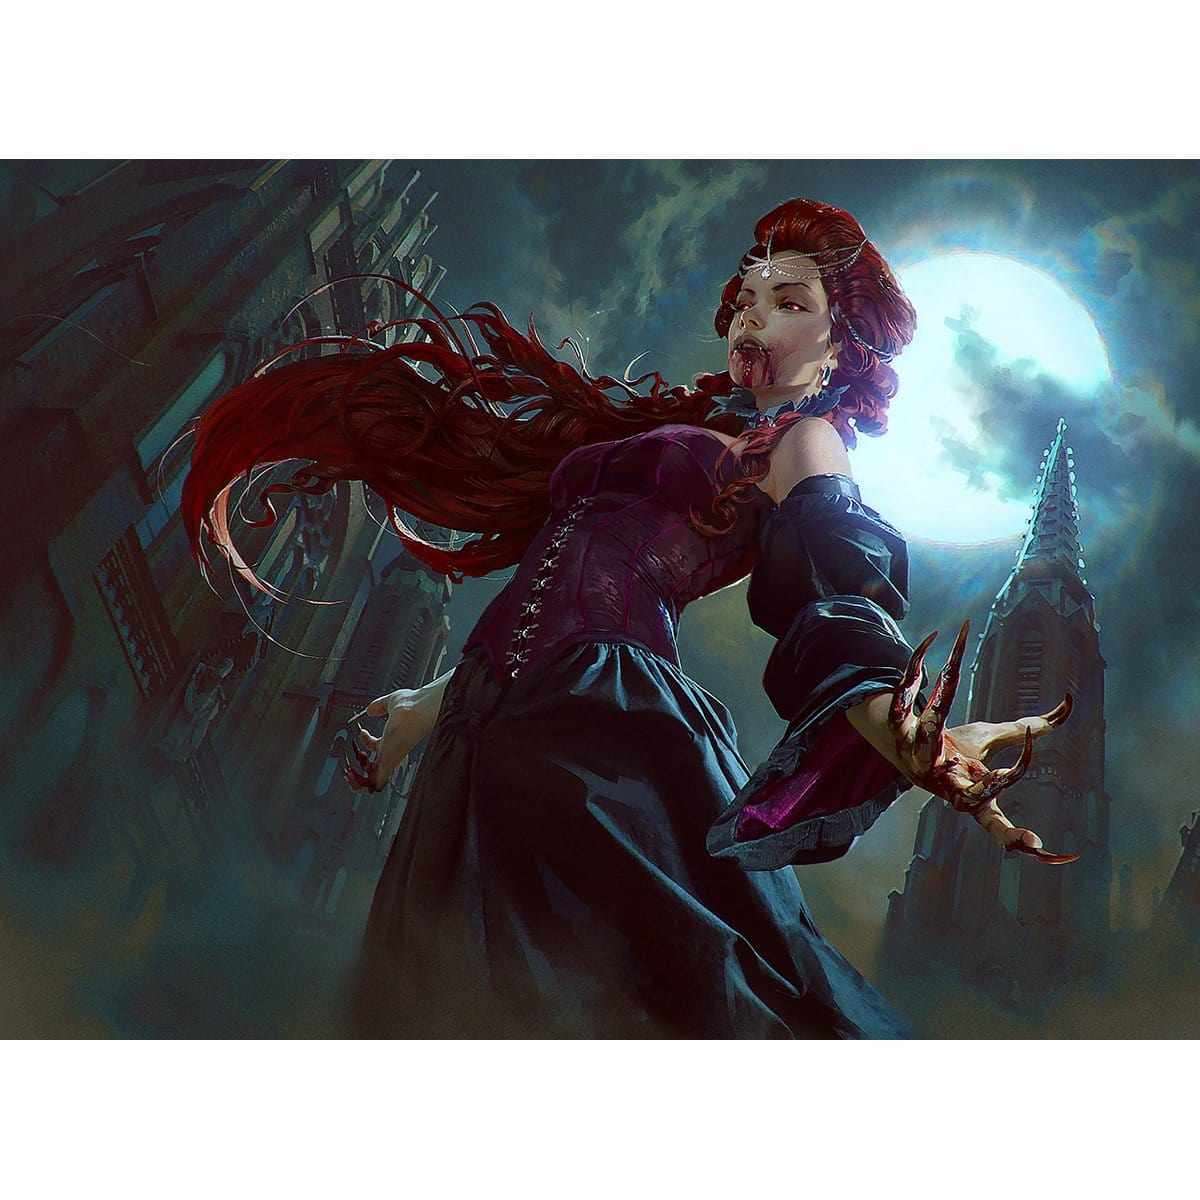 Vampire of the Dire Moon Print - Print - Original Magic Art - Accessories for Magic the Gathering and other card games